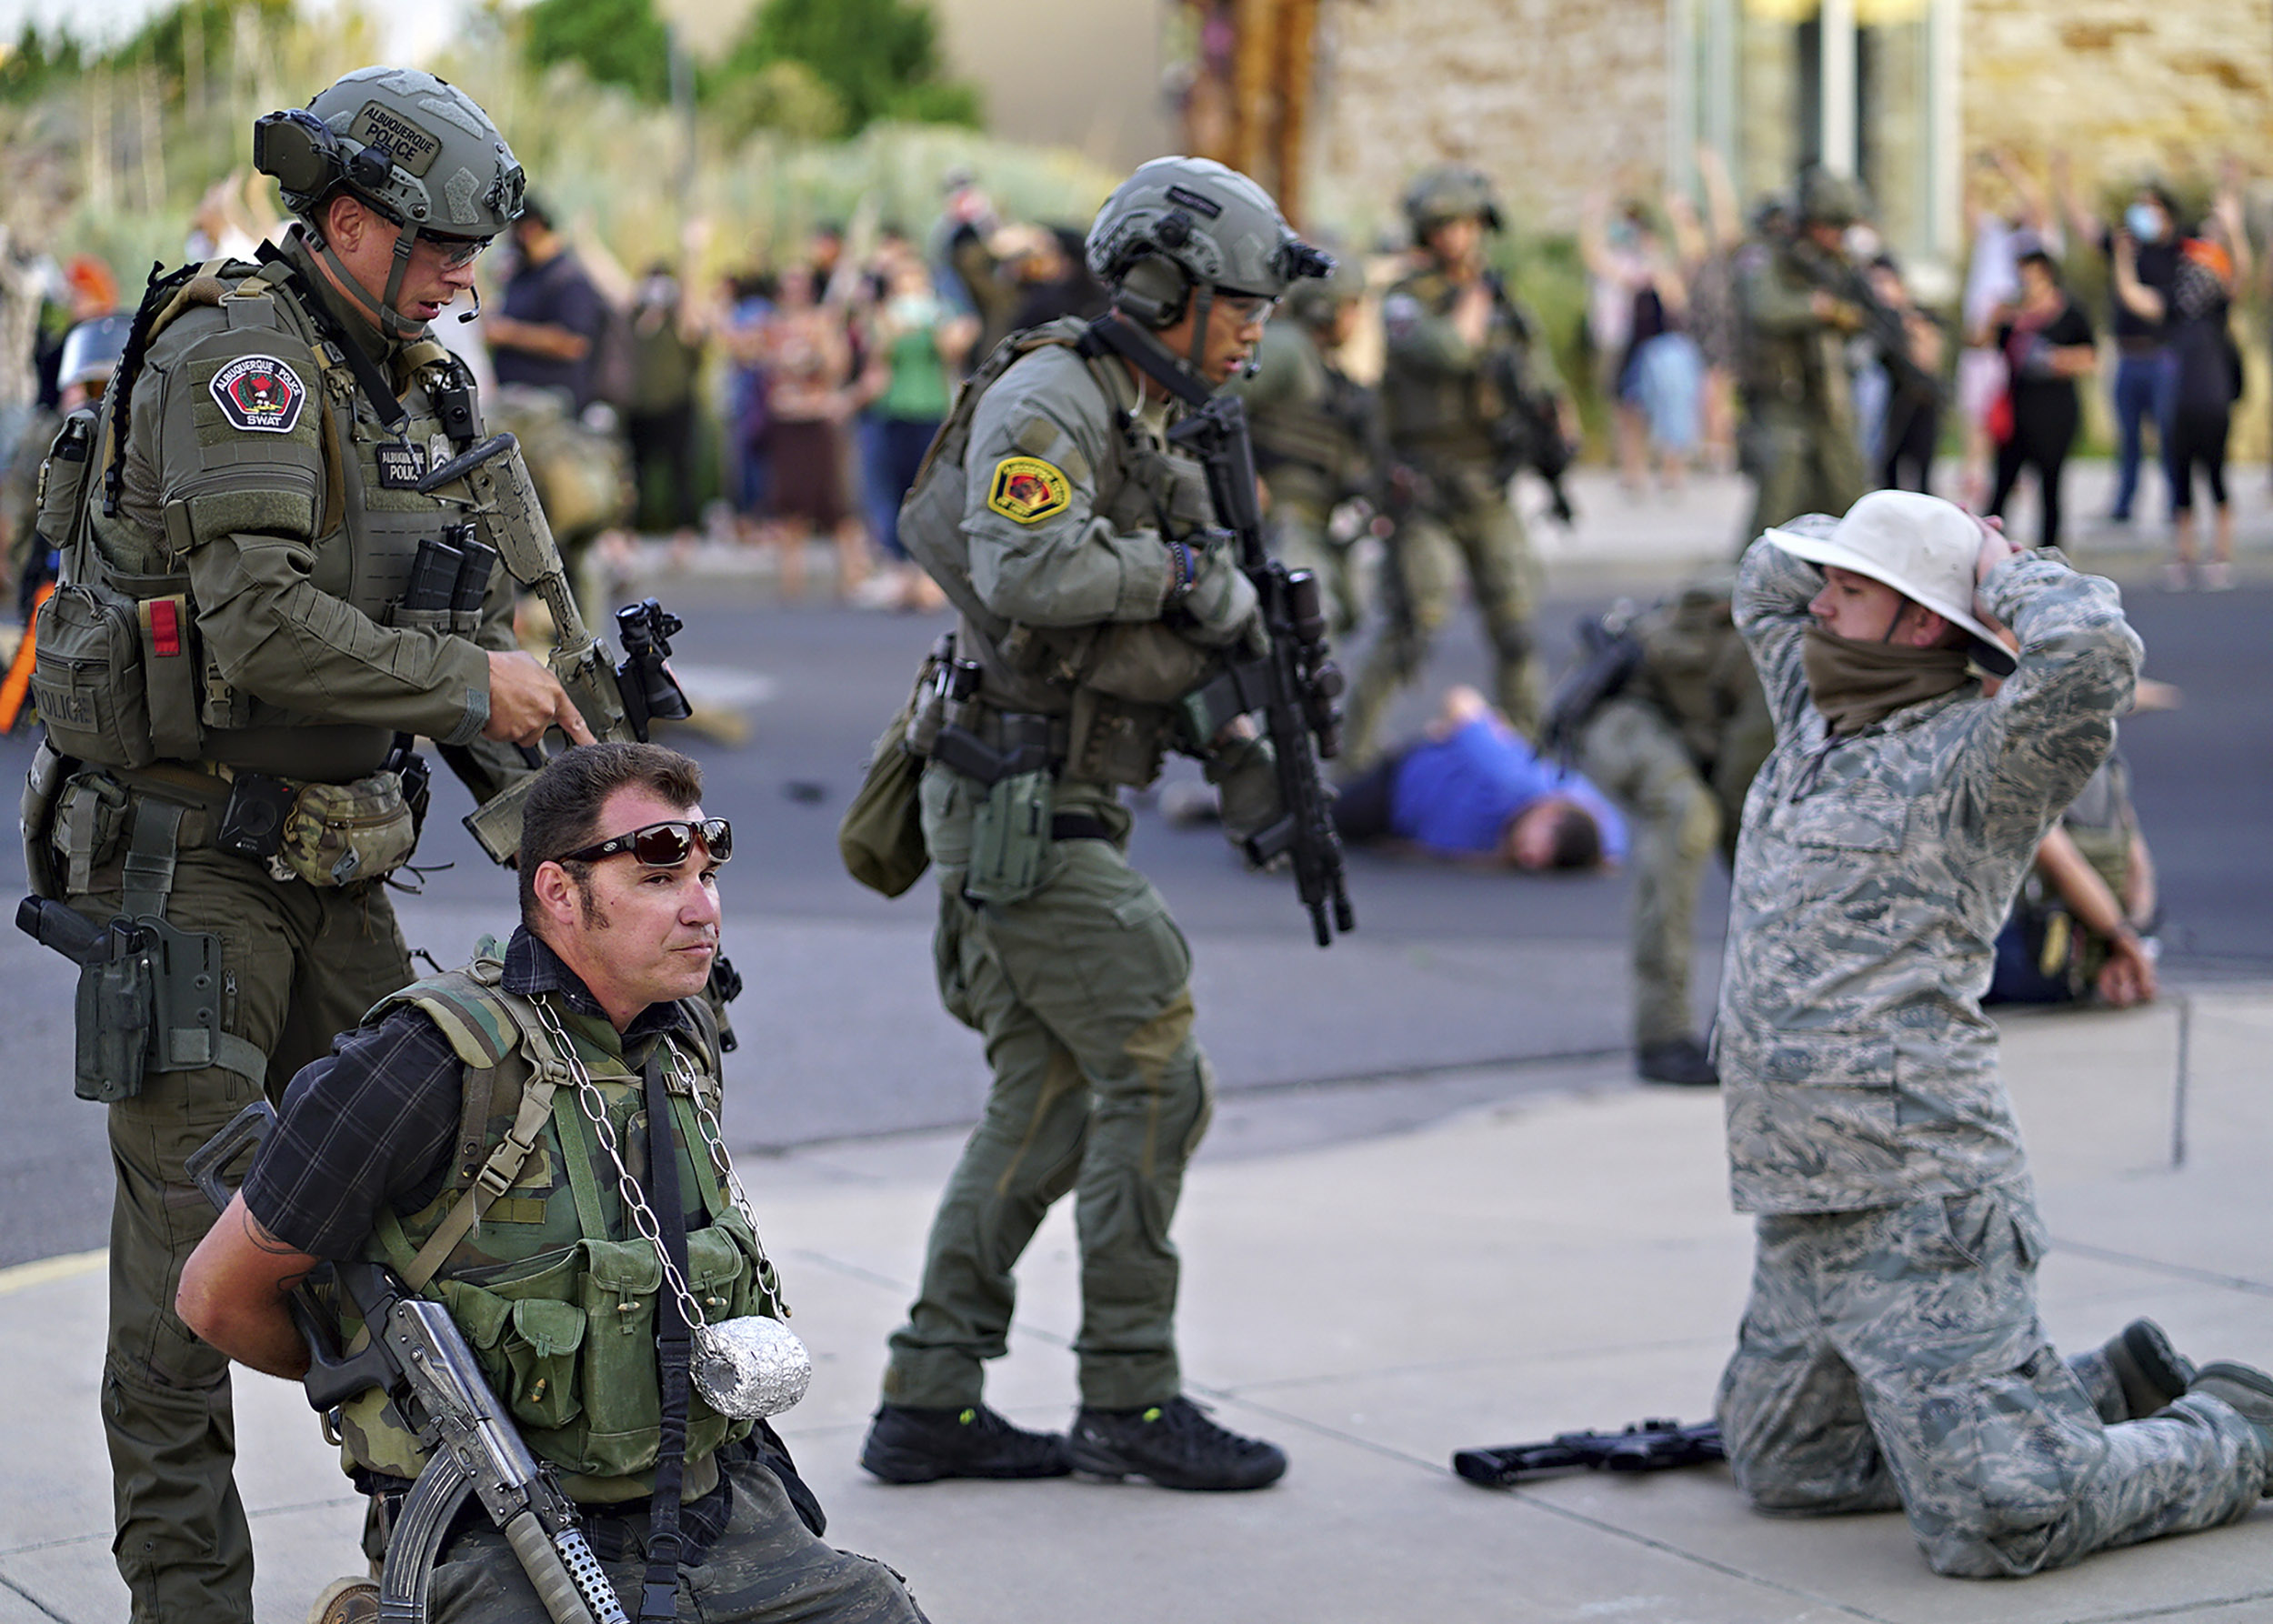 Albuquerque police detain members of the New Mexico Civil Guard, an armed civilian group, following the shooting of a man during a protest over a statue of Spanish conquerer Juan de Oñate on Monday, June 15, in Albuquerque, New Mexico.